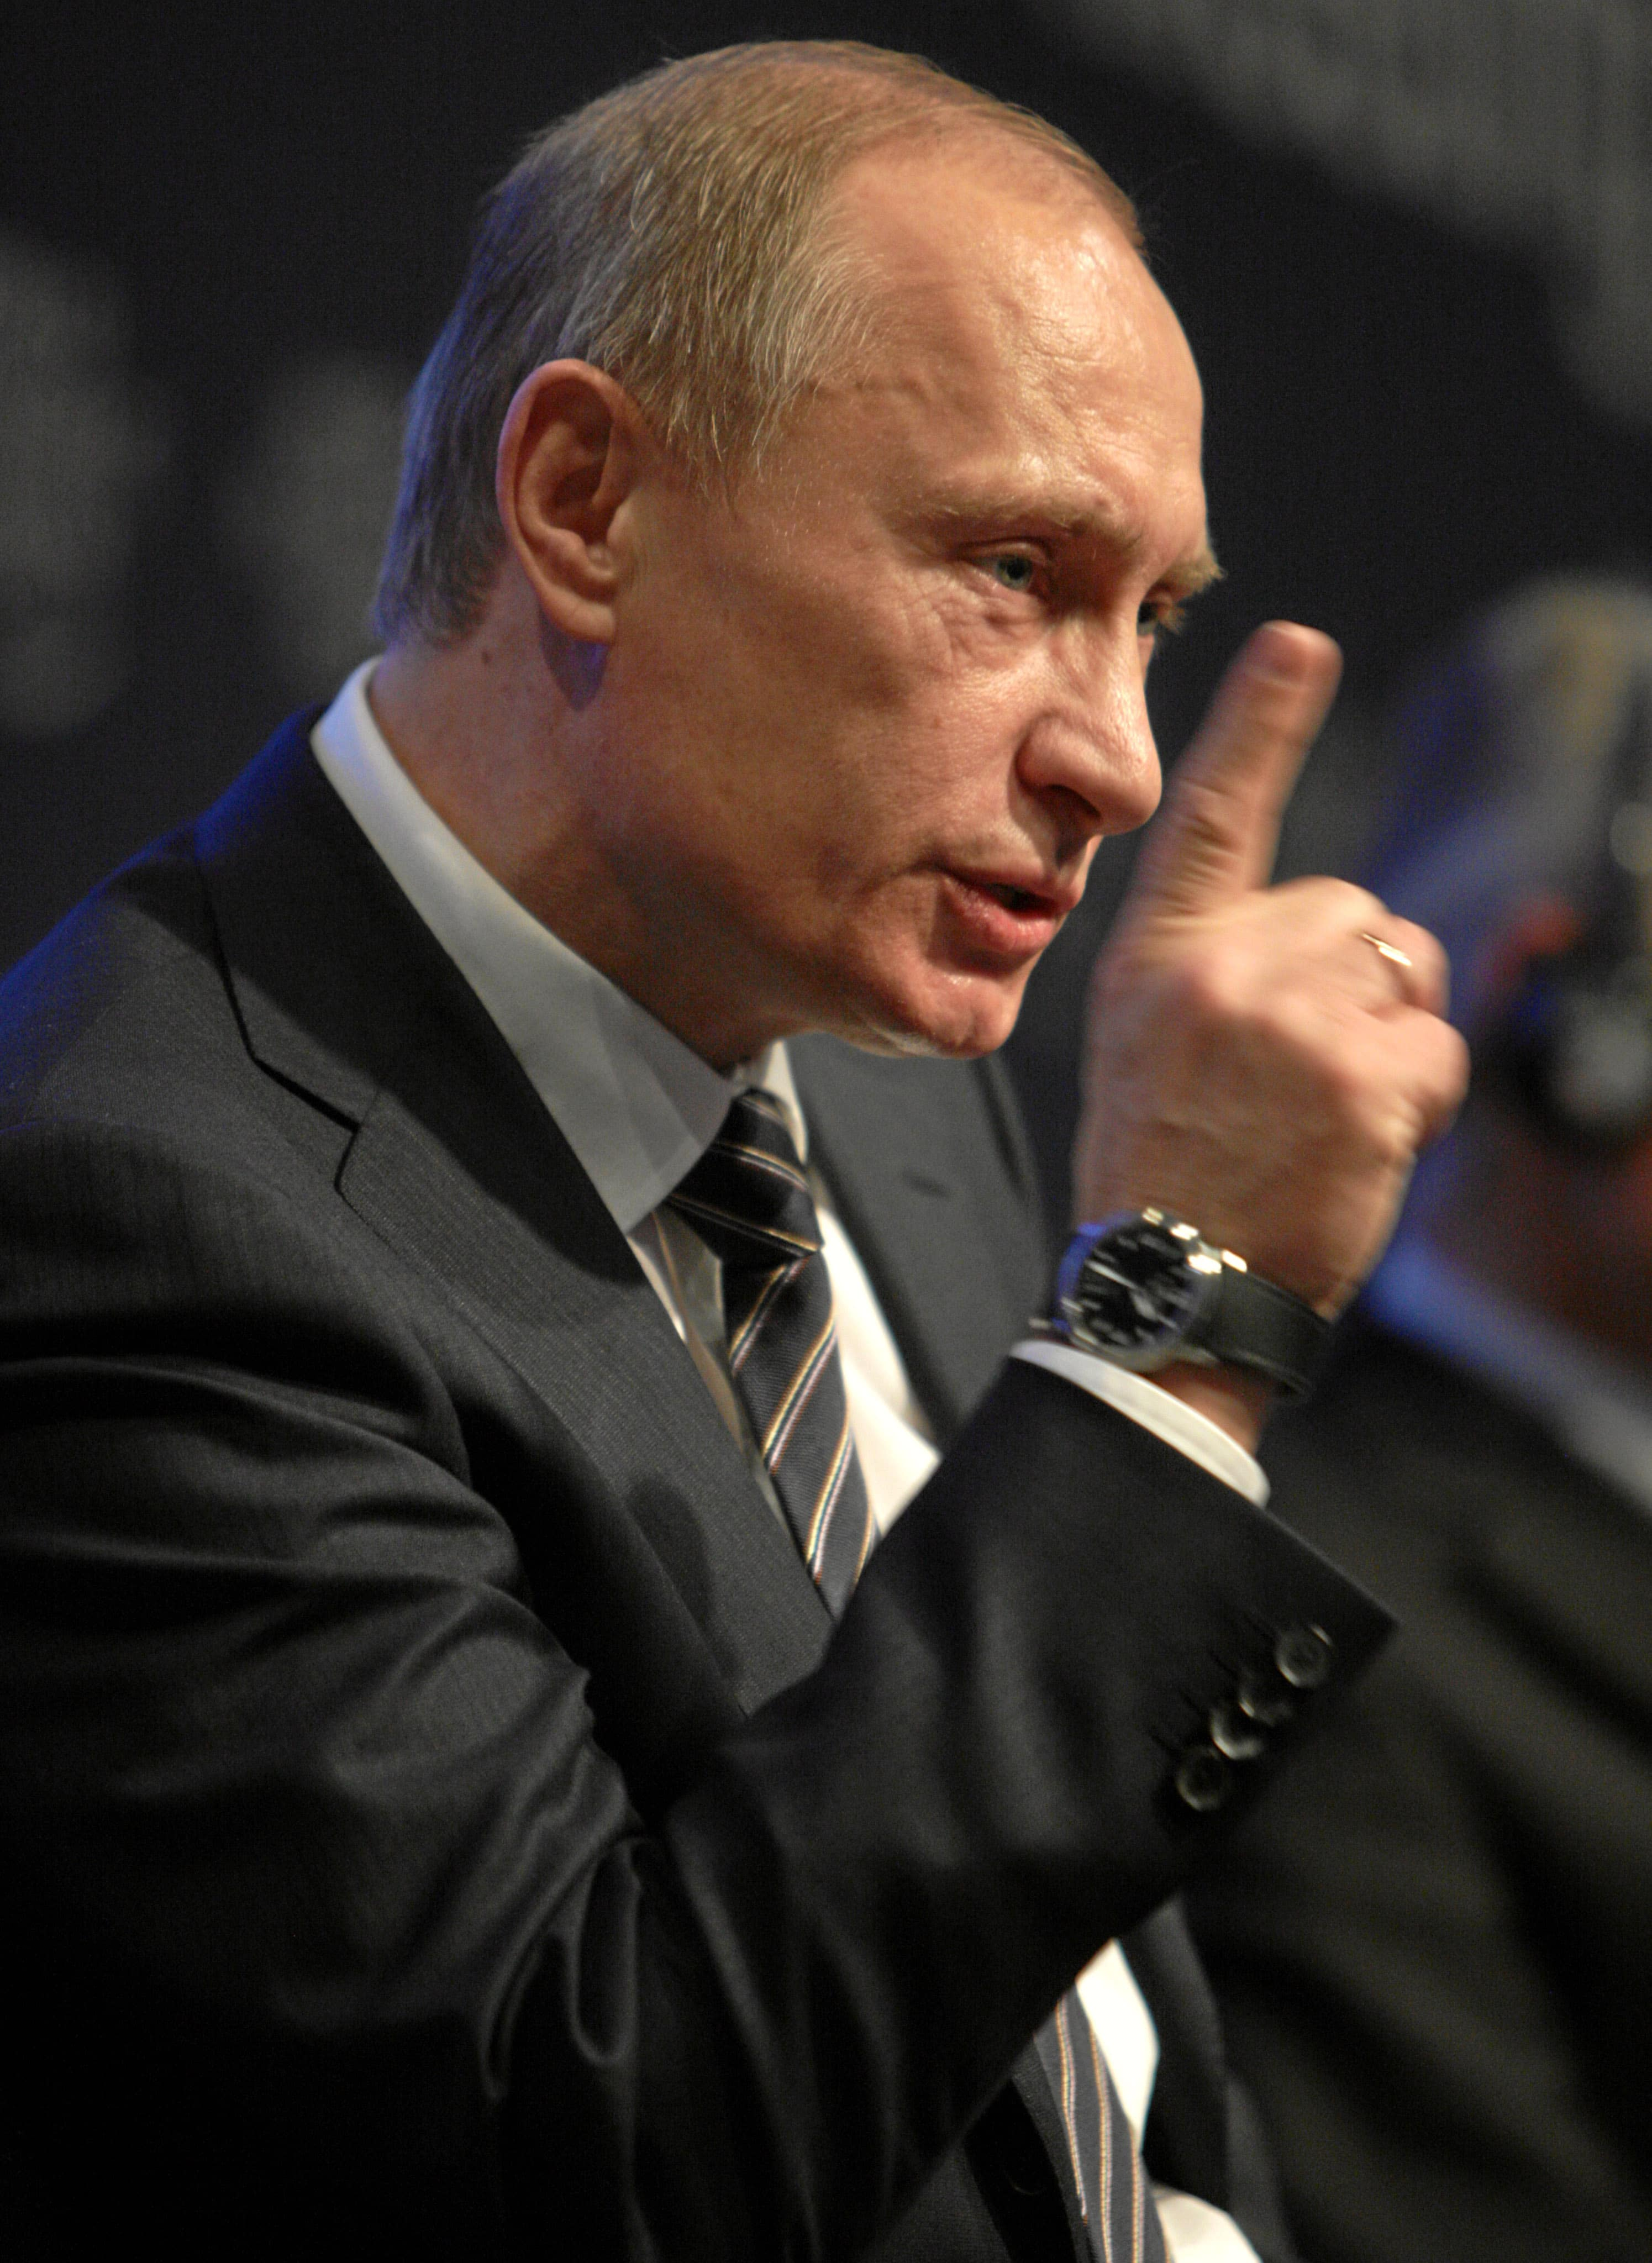 Putin Tries to Reassure APEC Investors Amid Ruble Record Lows